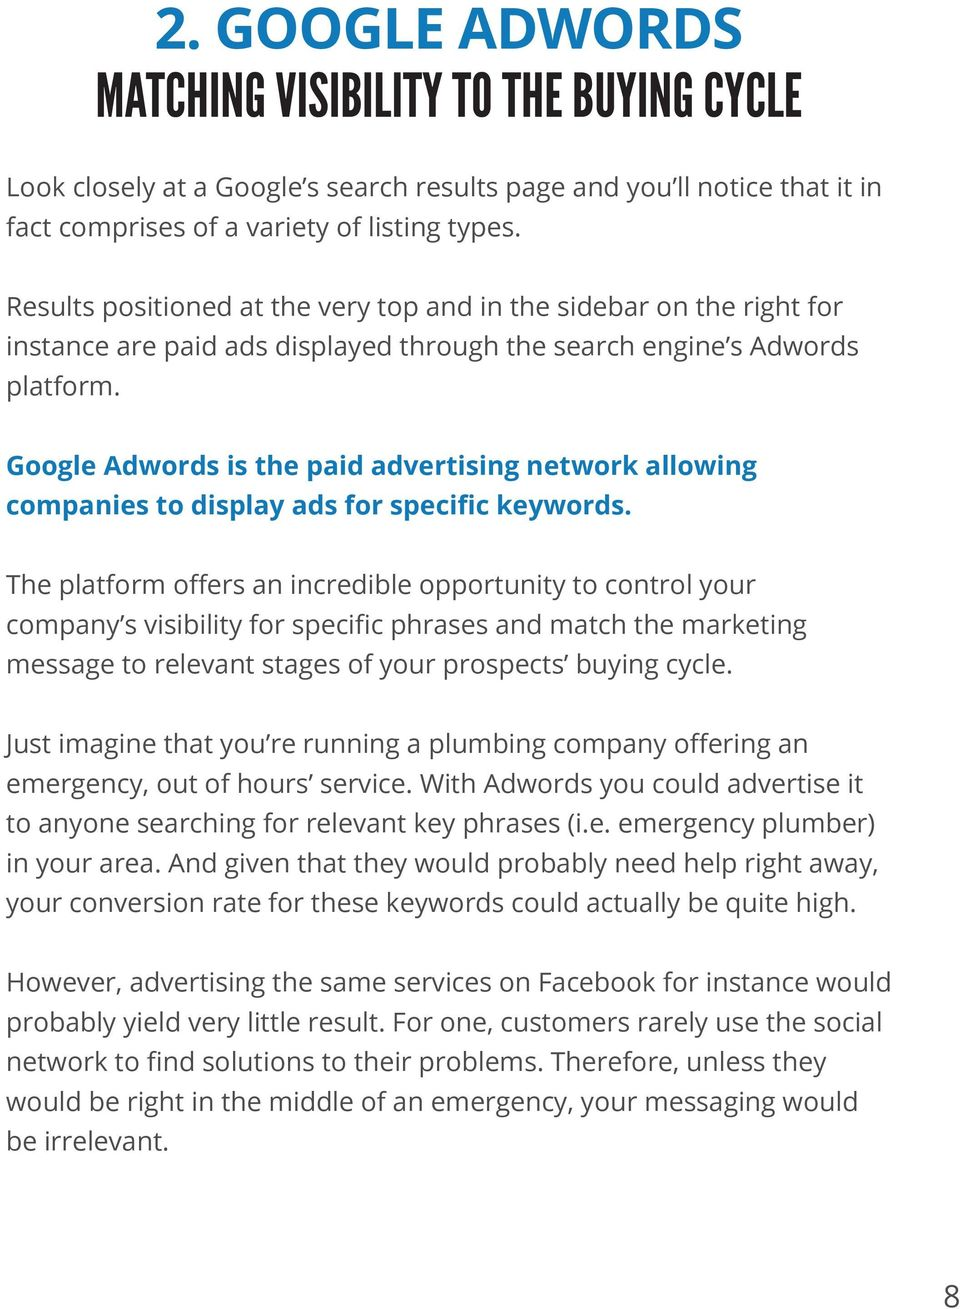 Google Adwords is the paid advertising network allowing companies to display ads for specific keywords.